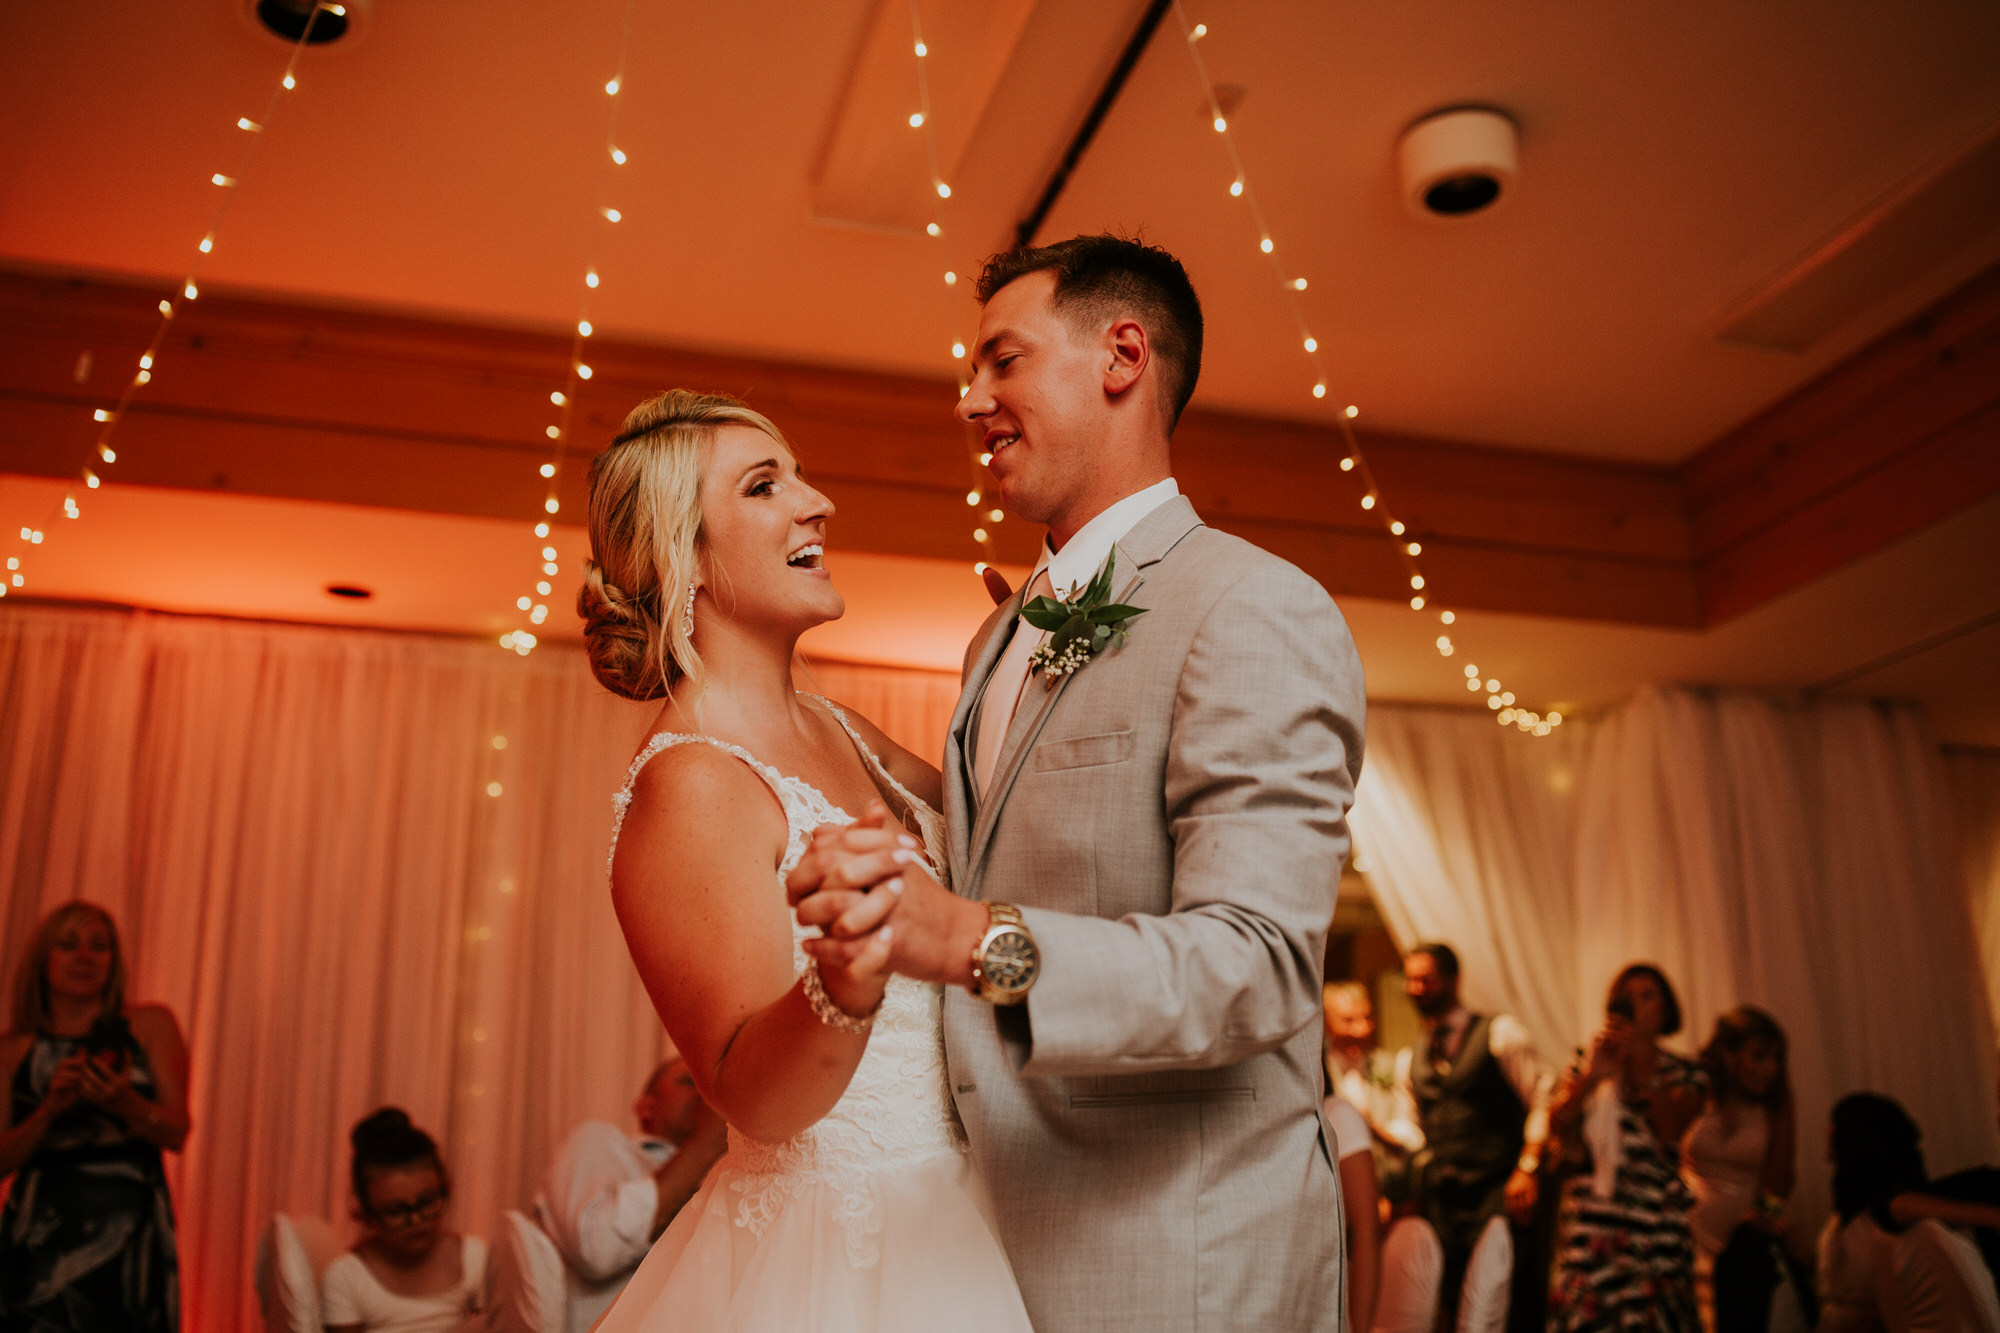 Elmhirst Resort Wedding - first dance